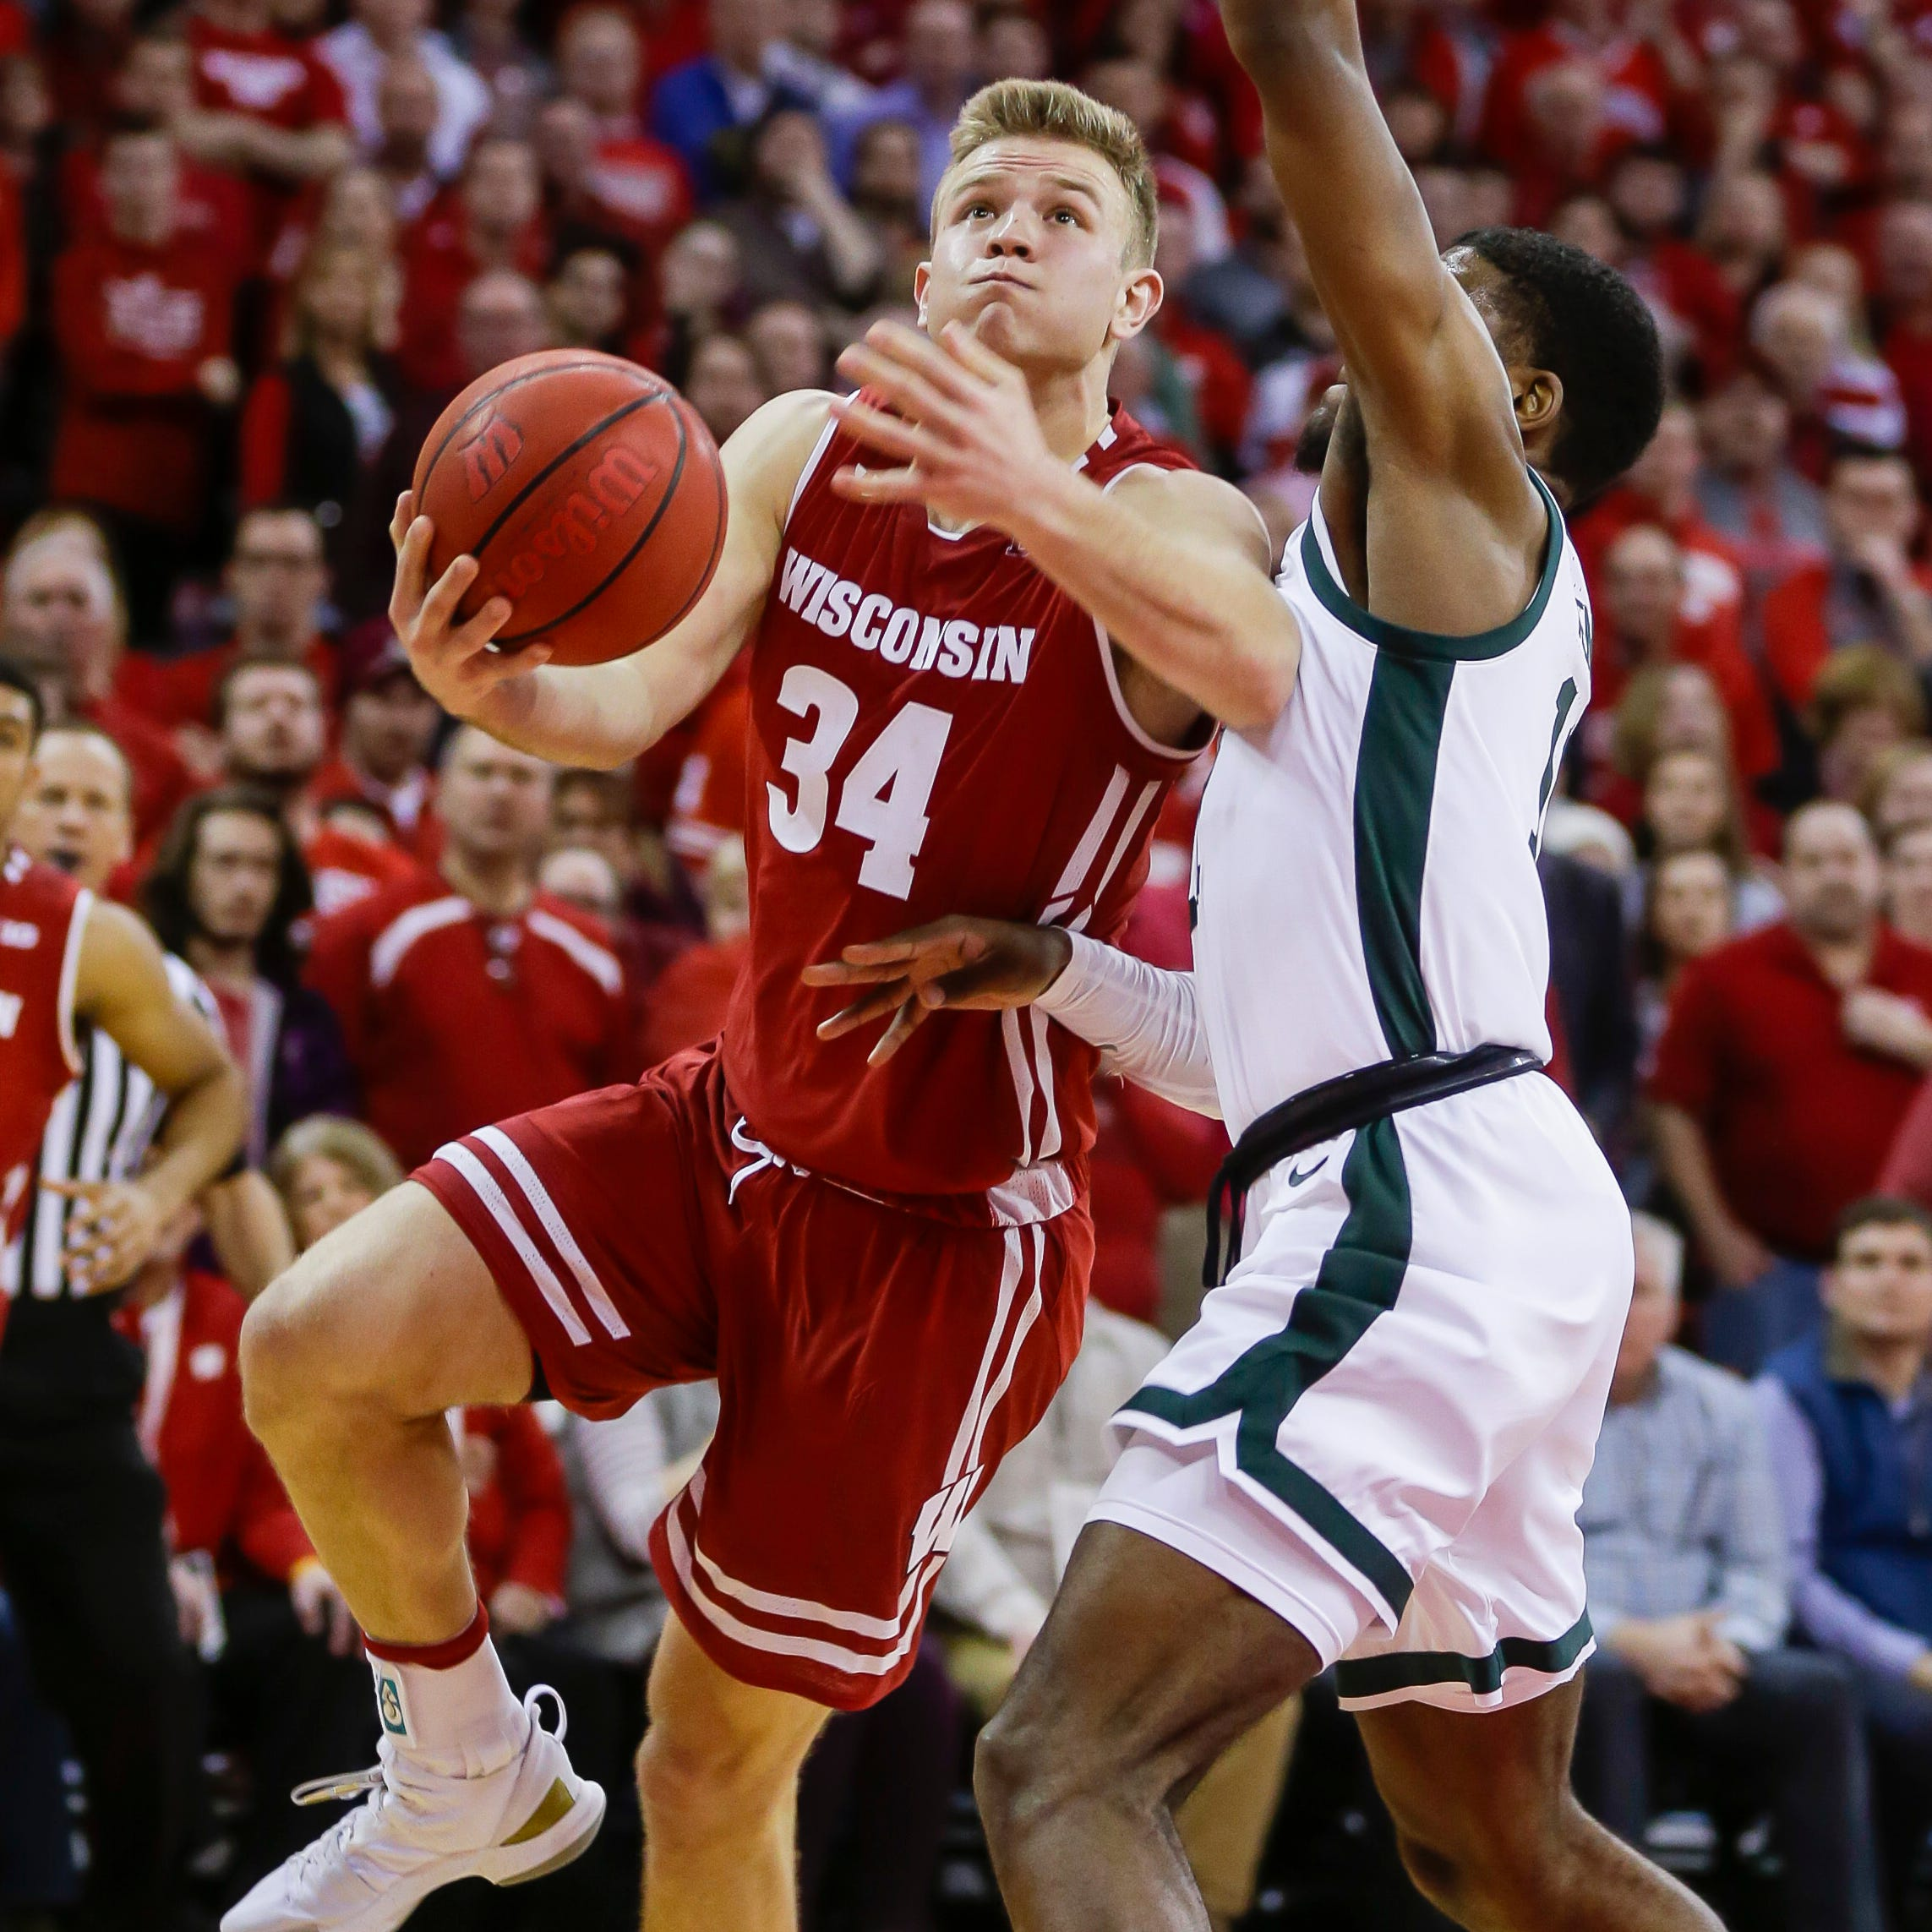 UW's Brad Davison battling through tough times on and off the basketball court